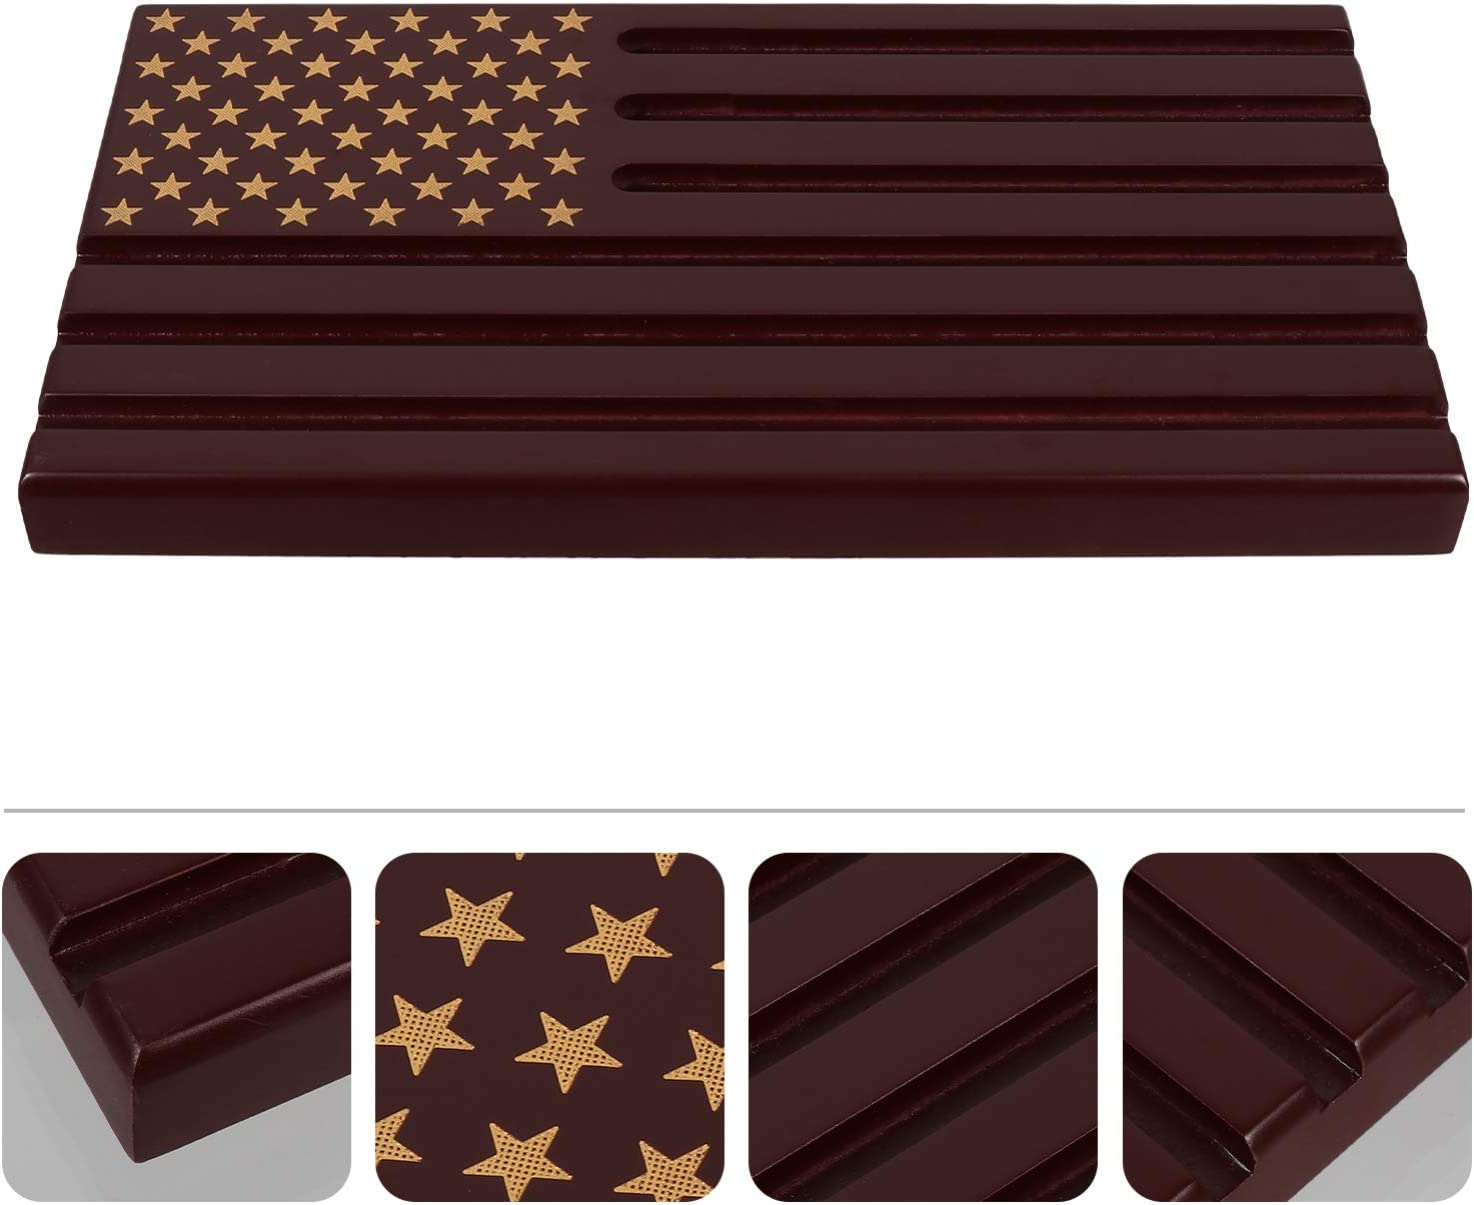 VOSAREA Military Challenge Display American Flag Coin Holder Stand Coin Display Case Wood Stand Coin Organizer for Medallion Challenge Coin Chip